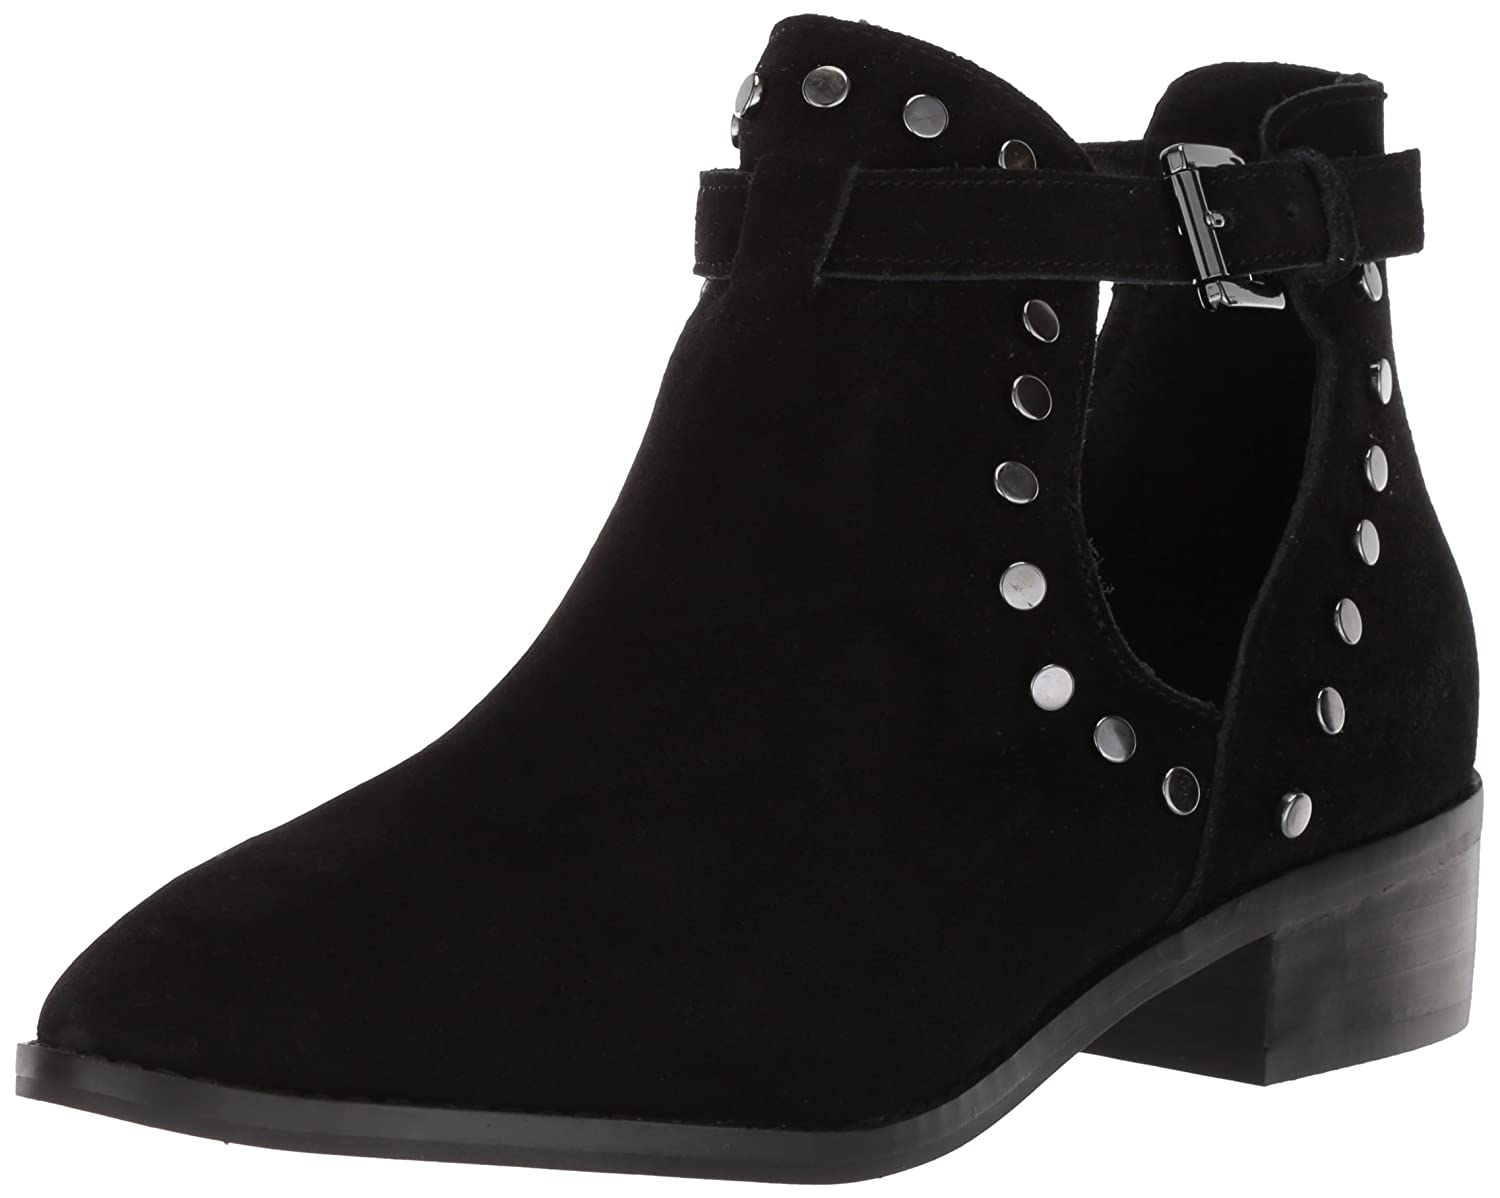 Carlos by Carlos Santana Women's Blake Ankle Boot B077H465DF 6 B(M) US|Black